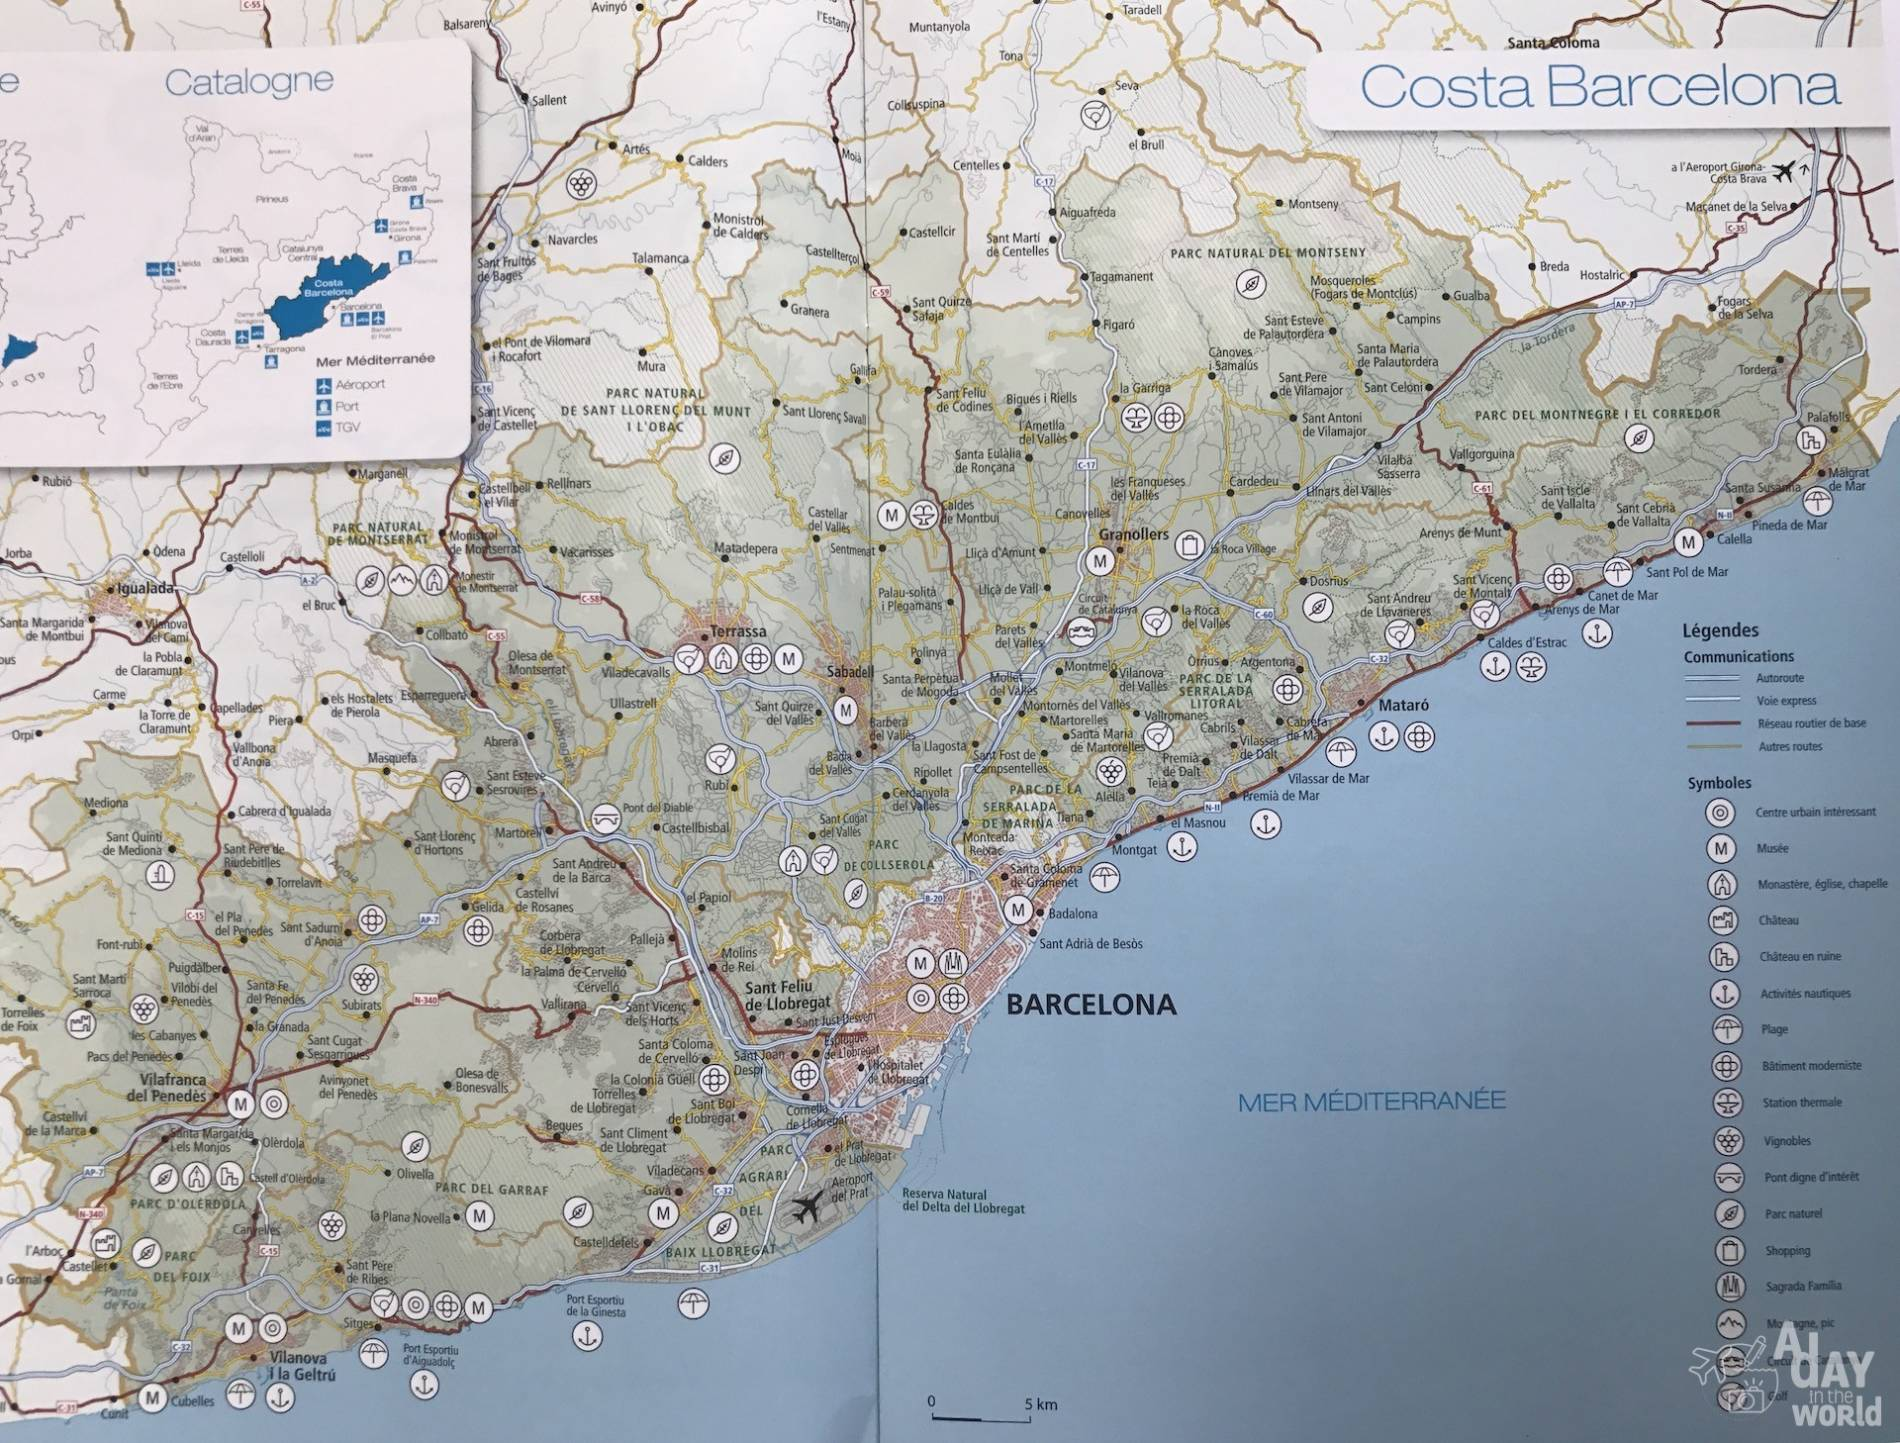 Carte Barcelone Vacances.Costa Barcelona Entre Mer Et Montagne A Day In The World